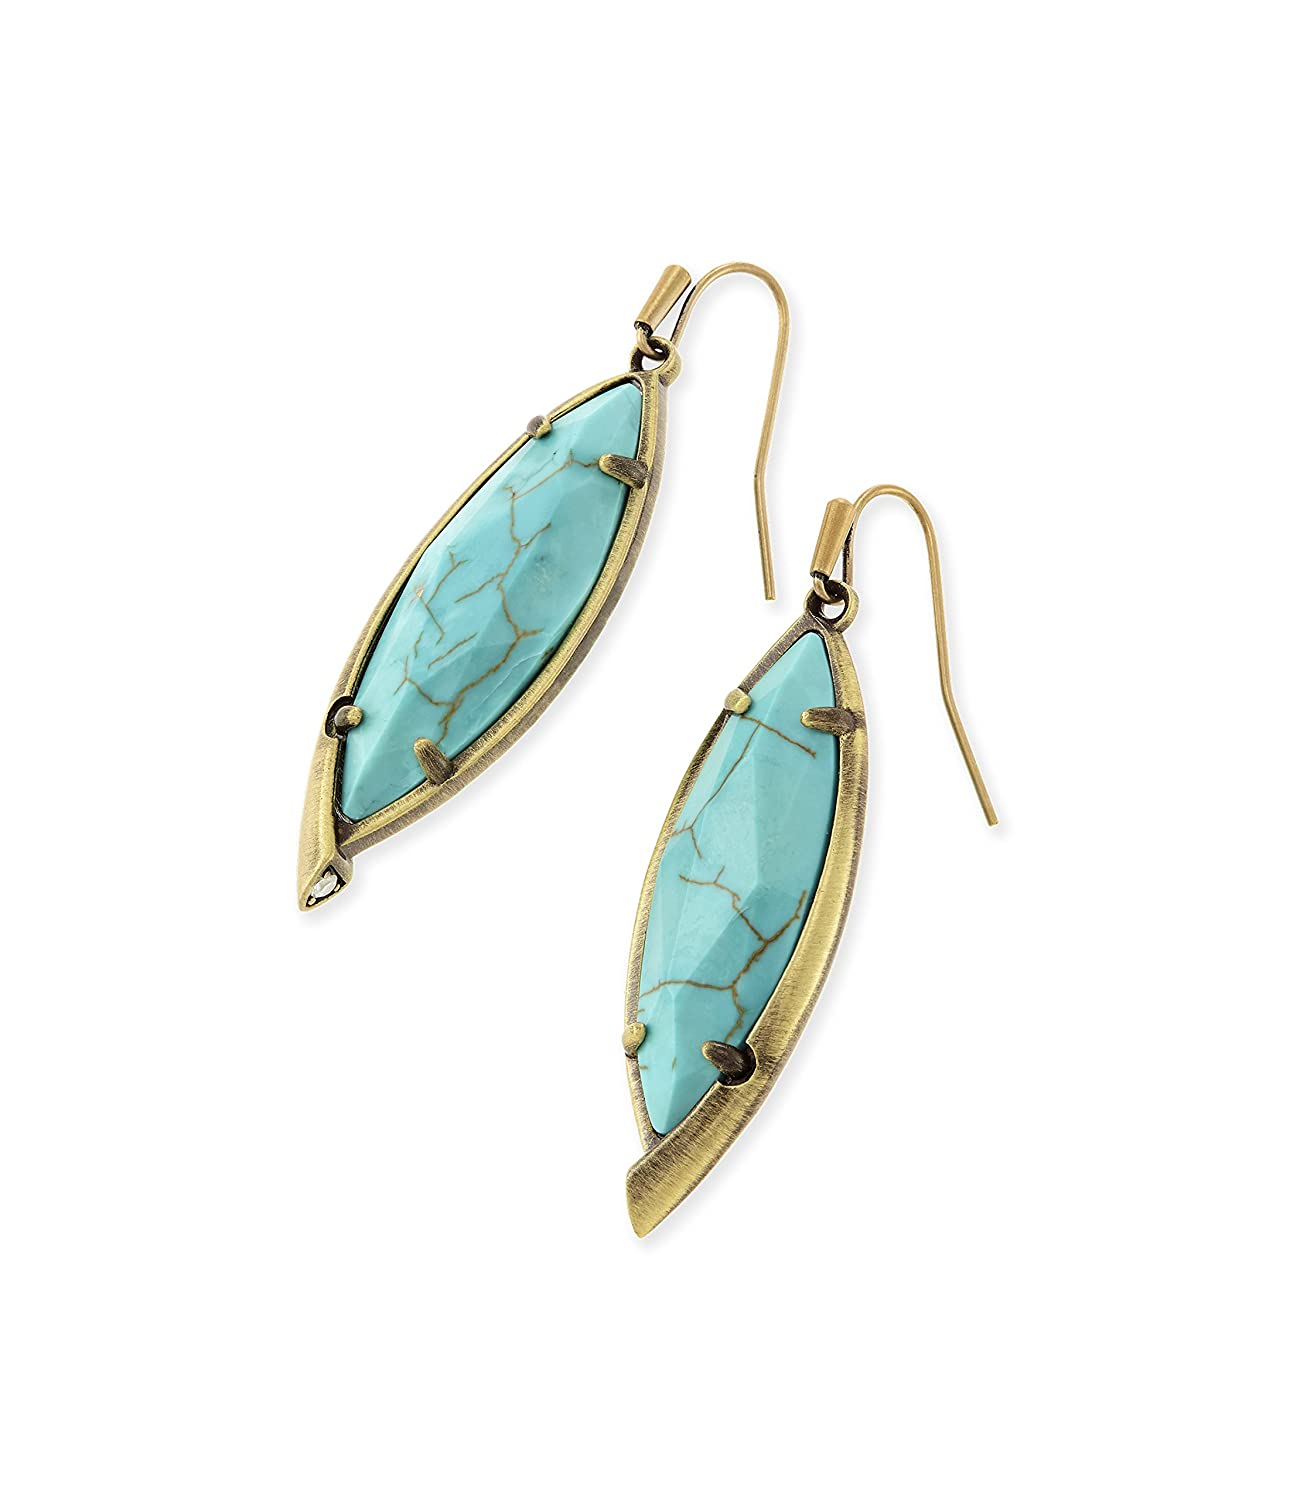 Blue Synthetic Turquoise Round Dome Stud Earring 14K Gold Plated Sterling Silver